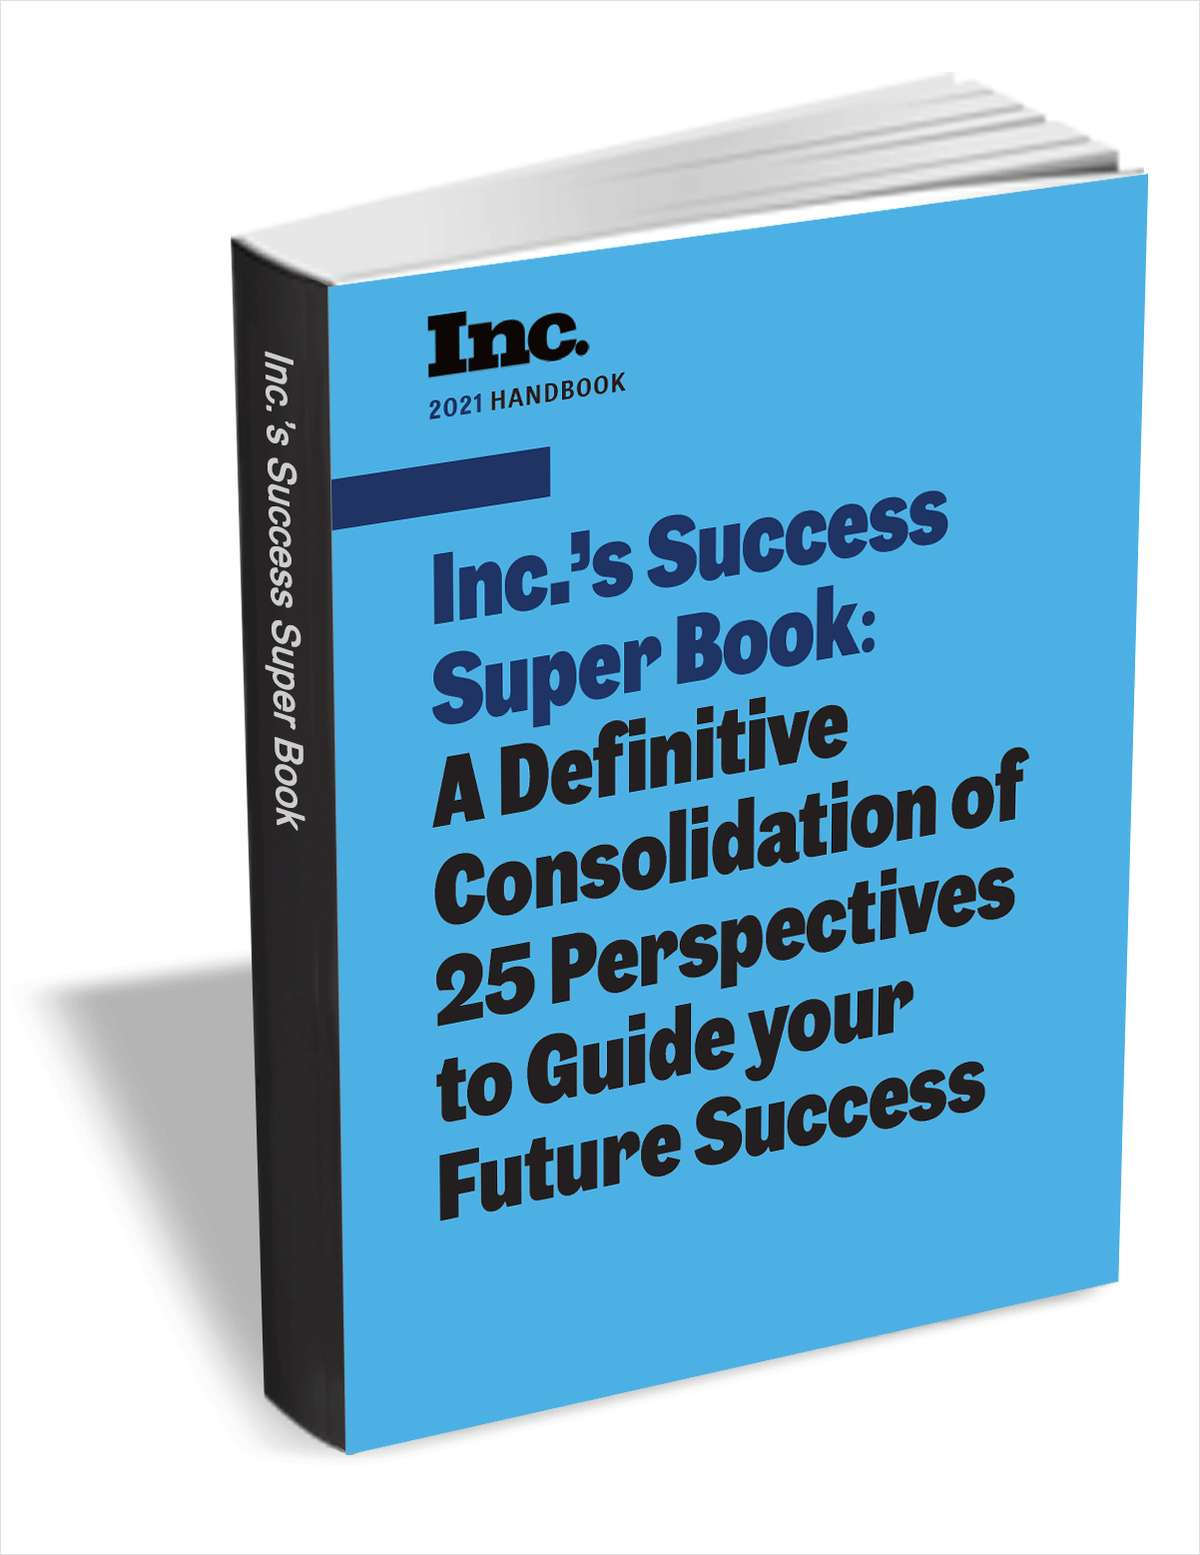 Inc.'s Success Super Book: A Definitive Consolidation of 25 Perspectives to Guide your Future Success